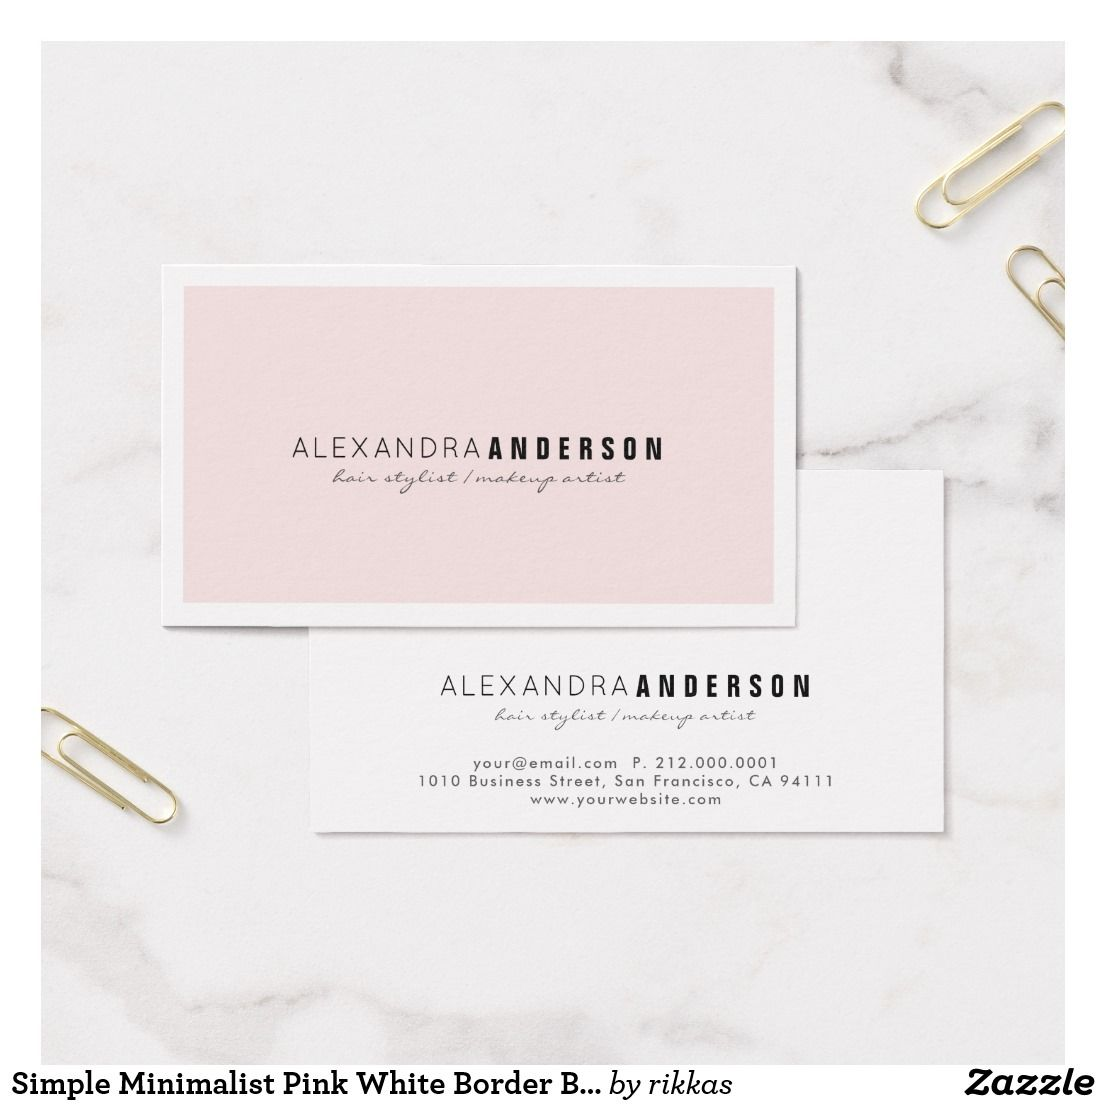 Simple Minimalist Pink White Border Business Card Zazzle Com Pink Business Card Simple Business Cards Business Card Design